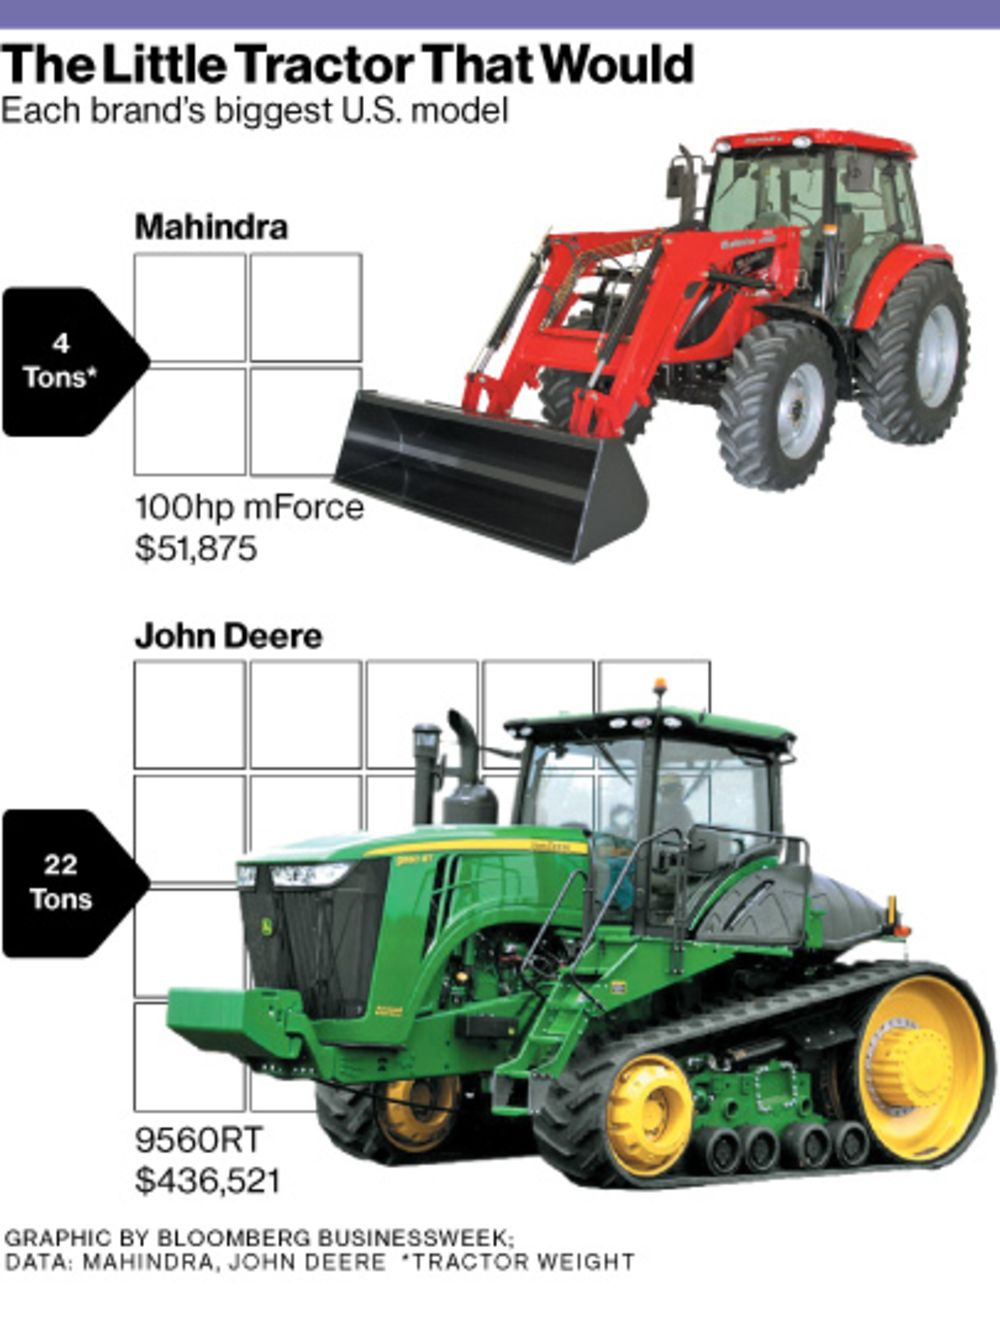 Indian Tractor Maker Mahindra Takes On Deere - Bloomberg